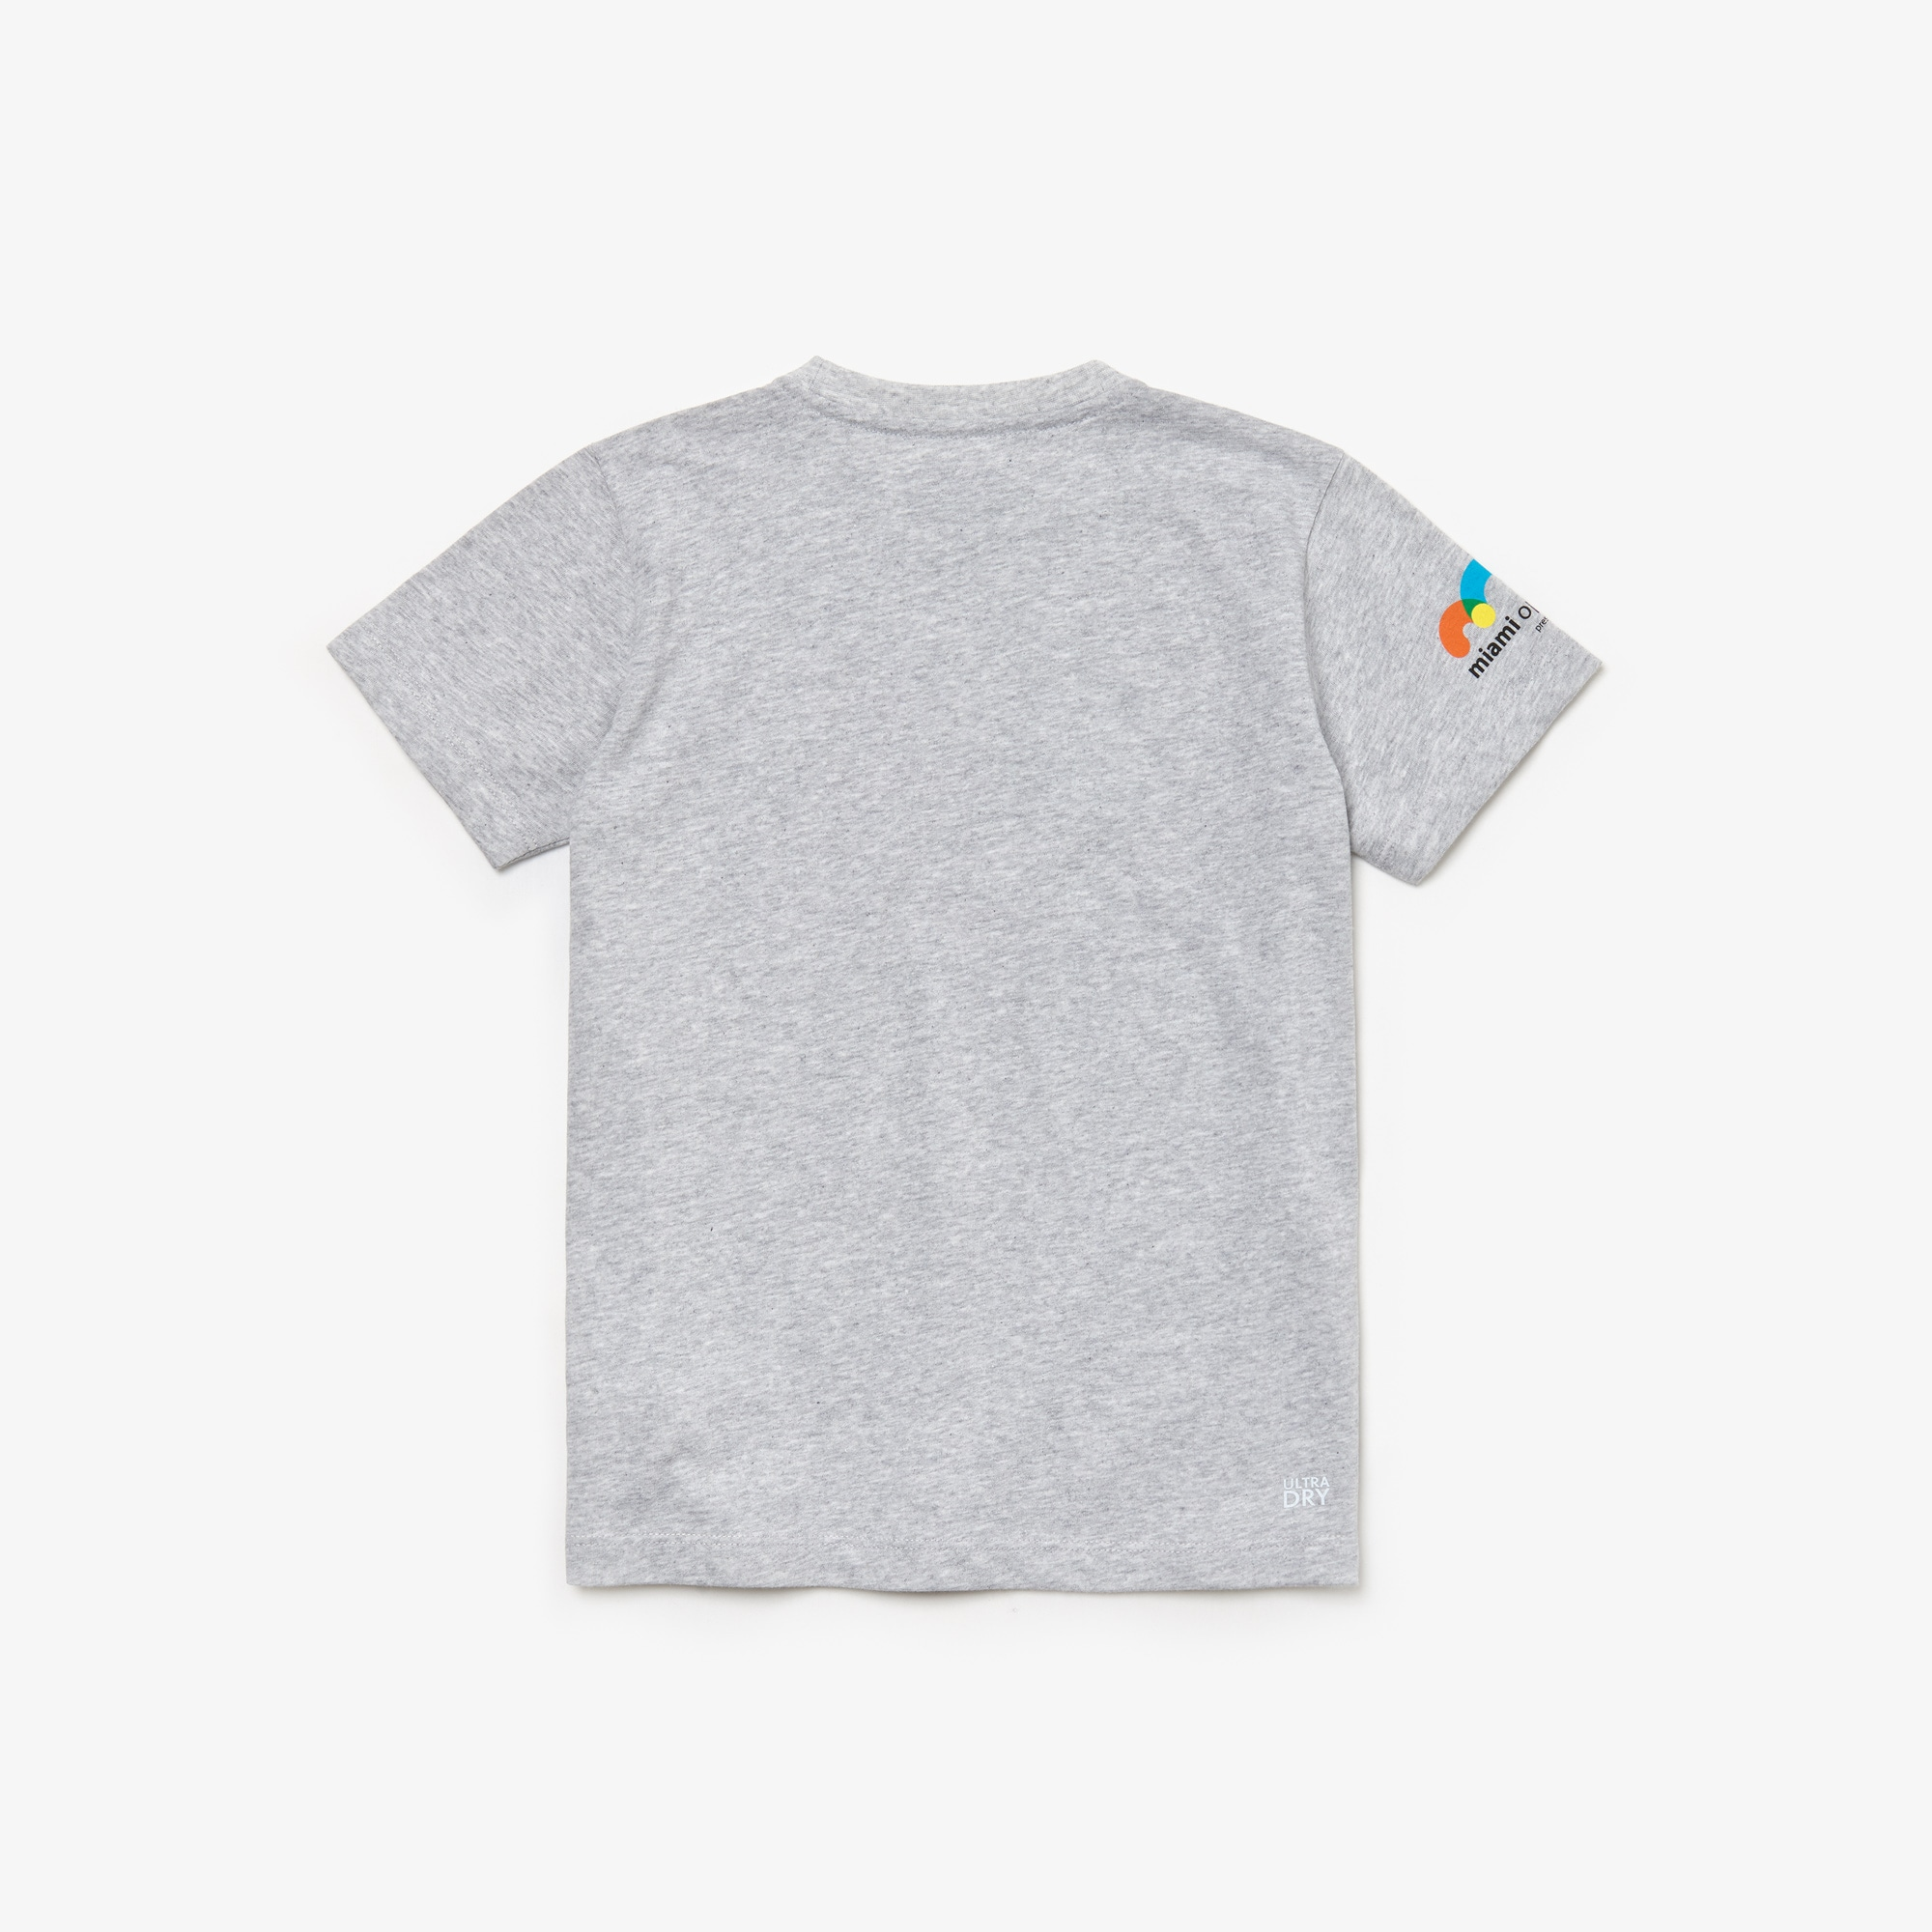 Kids' SPORT Miami Open Edition T-shirt